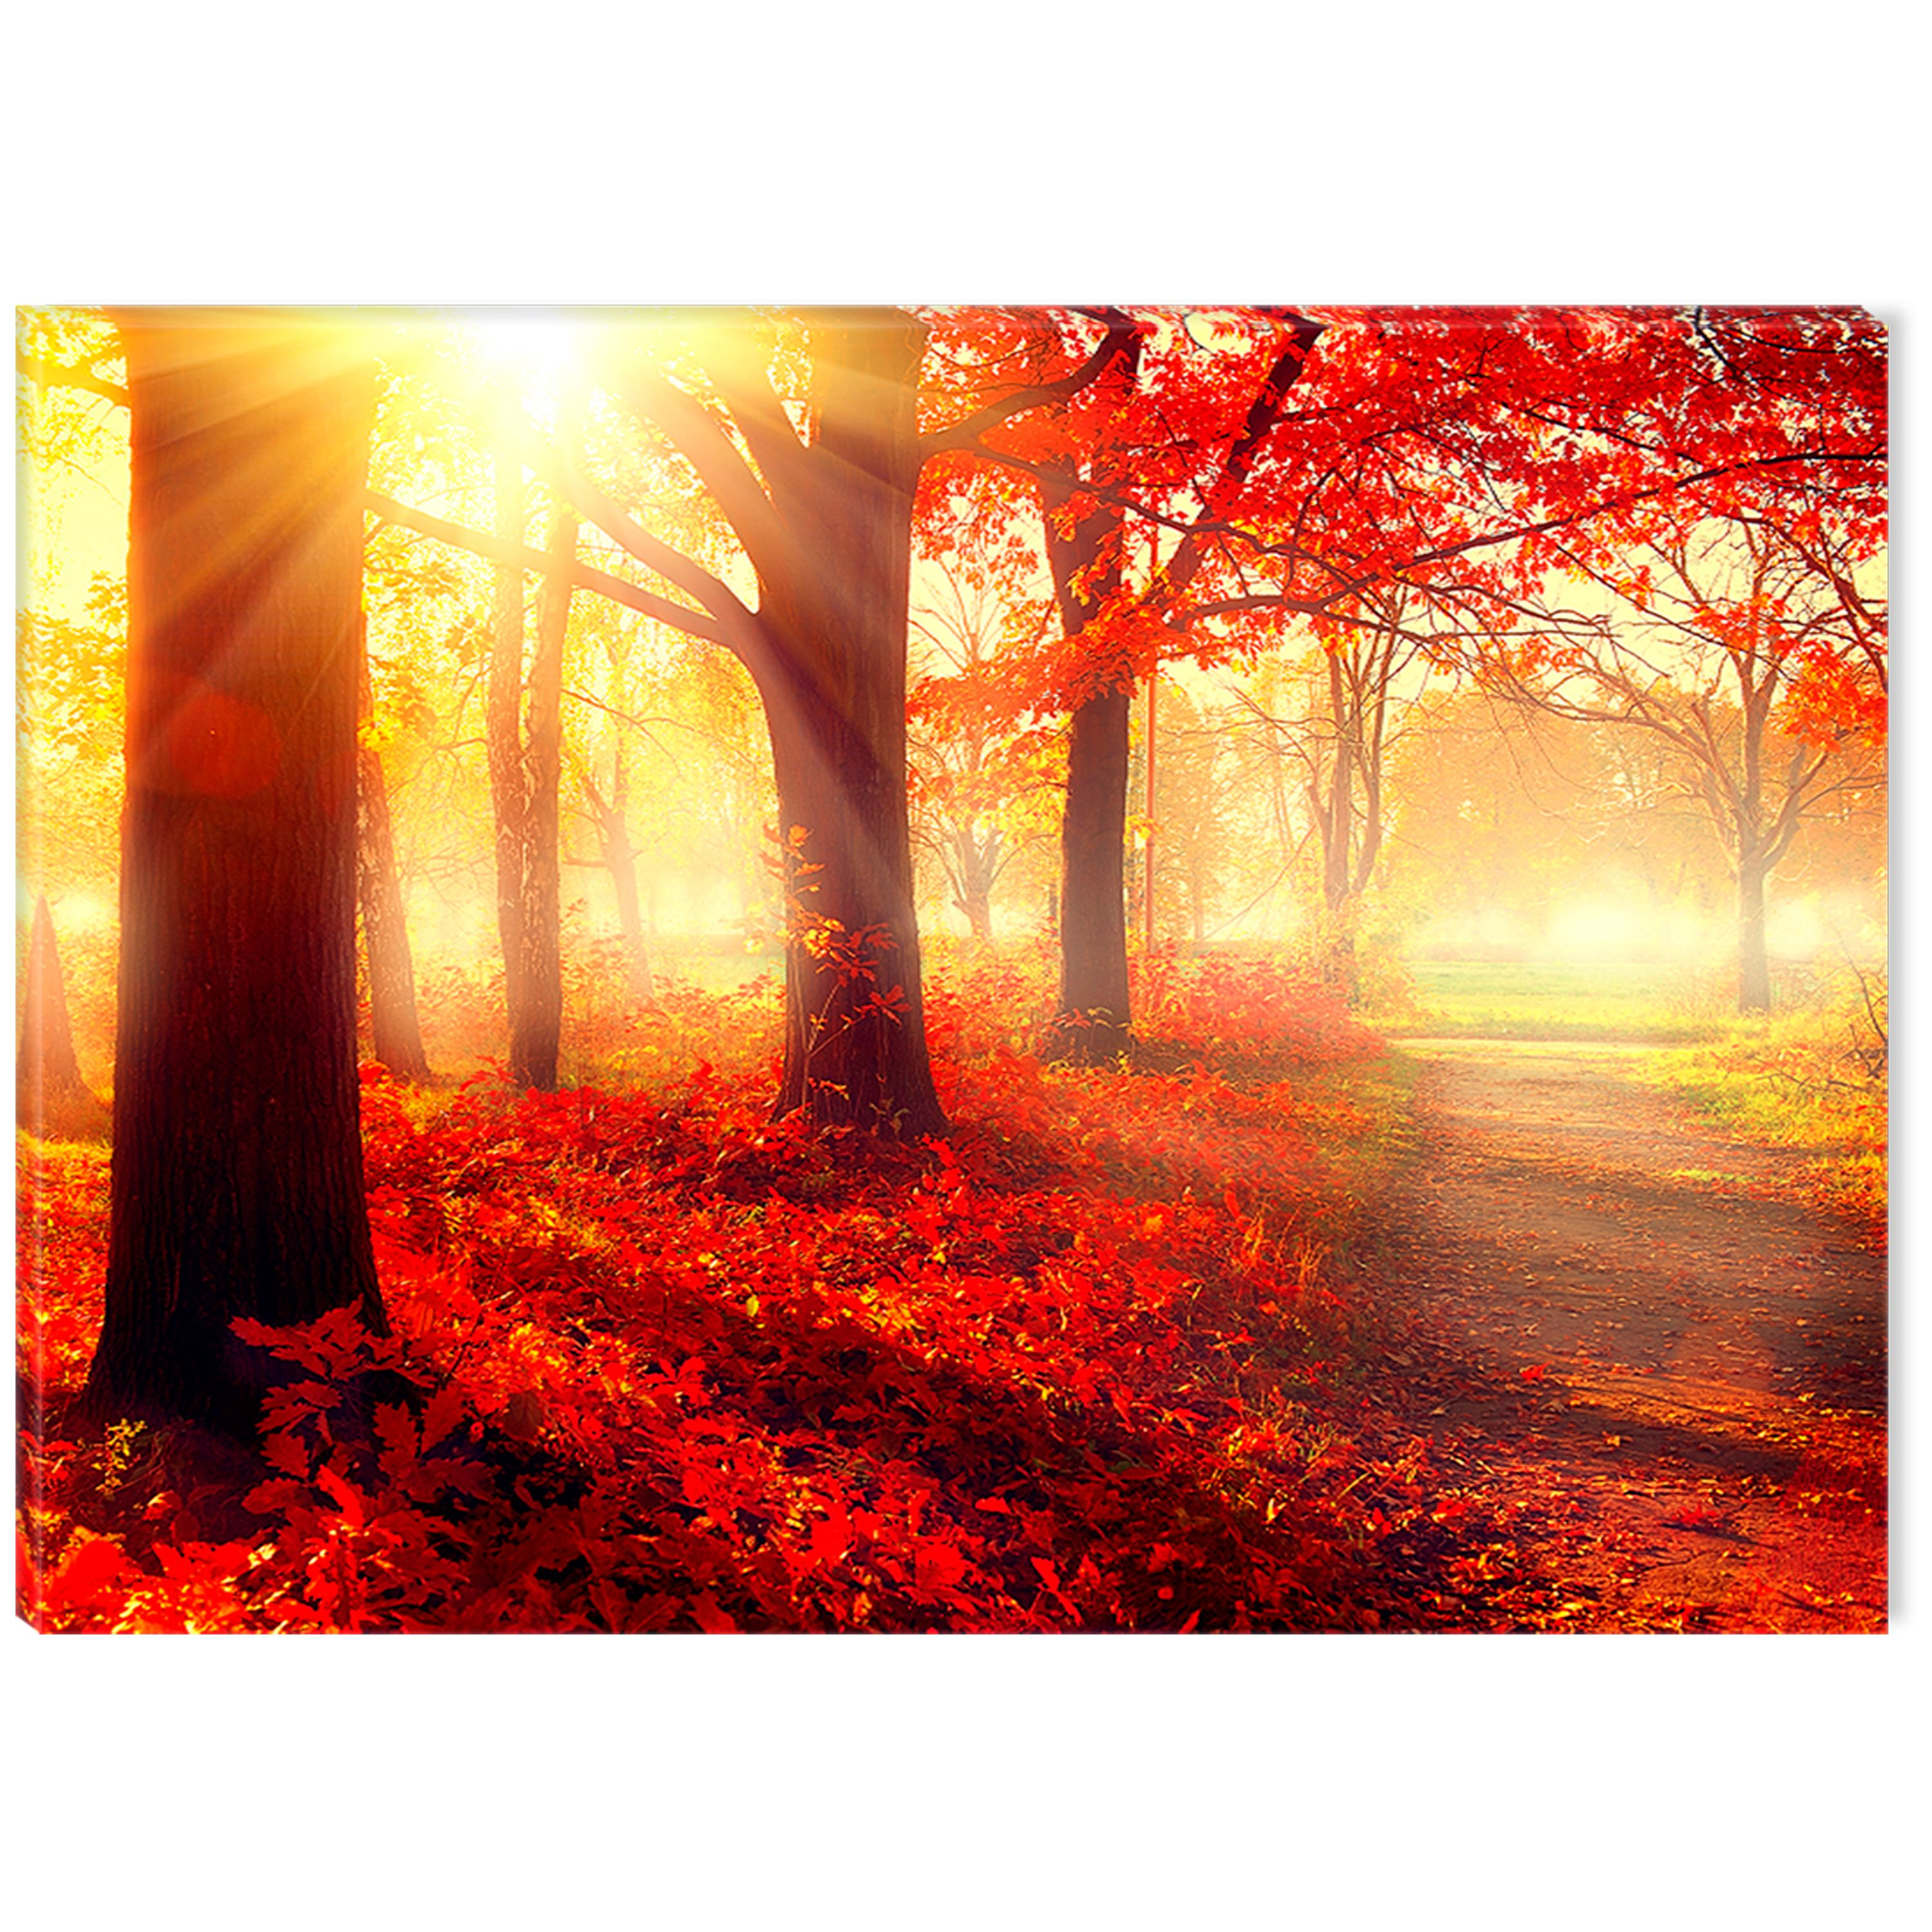 Startonight Canvas Wall Art Red Morning in the Forest USA Design for Home Decor, Illuminated Nature Painting Modern Canvas Artwork Framed Ready to Hang Medium 23.62 X 35.43 inch